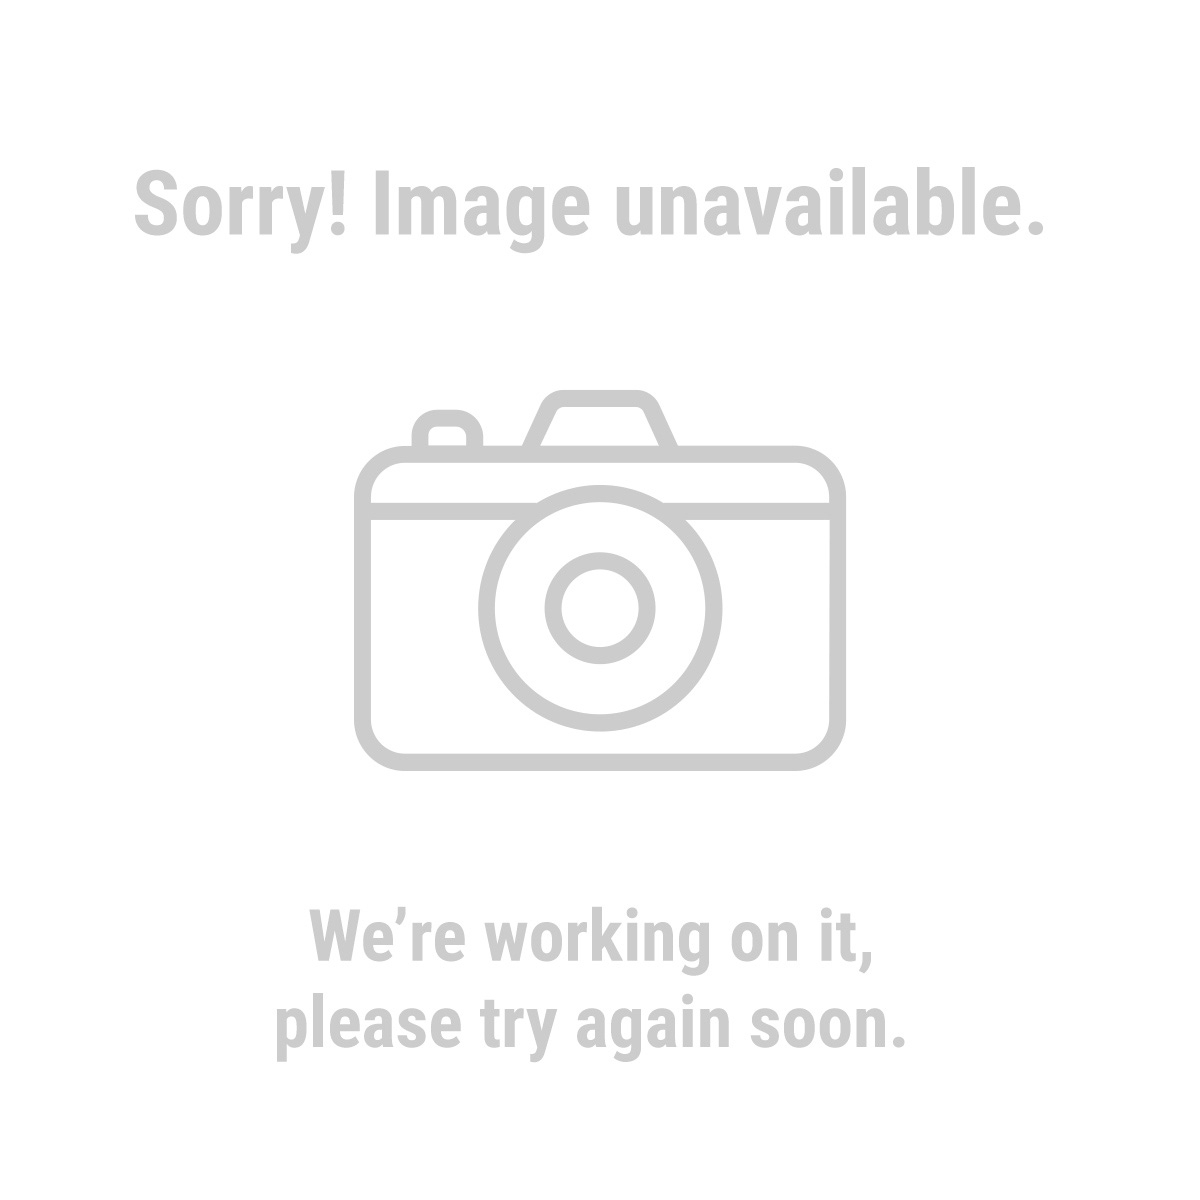 Haul Master Automotive 90018 1500 Lb.  Tri-Fold Aluminum Loading Ramp